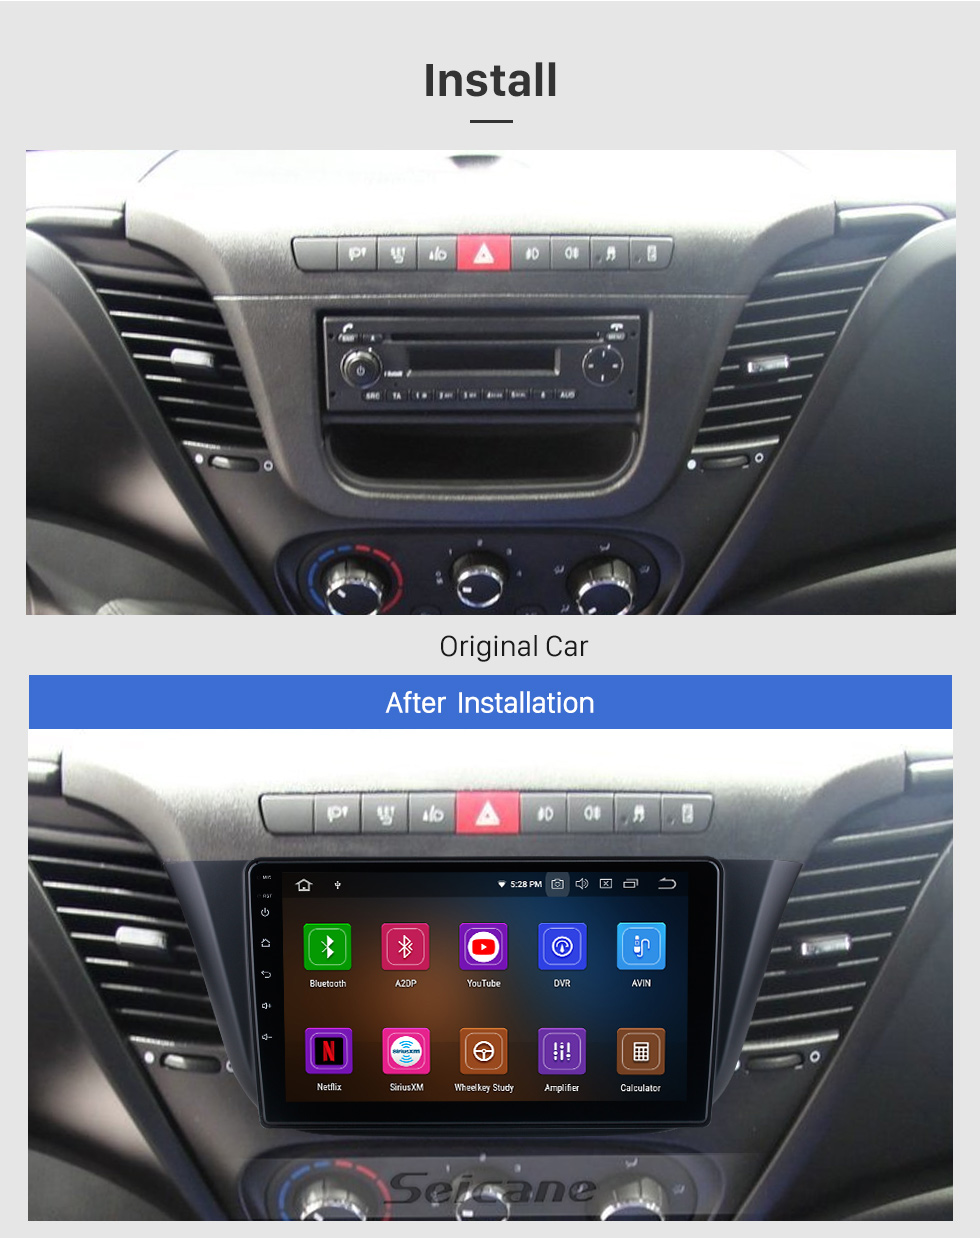 Seicane 9 inch For 2014 Iveco DAILY Radio Android 10.0 GPS Navigation System with USB HD Touchscreen Bluetooth Carplay support OBD2 DSP